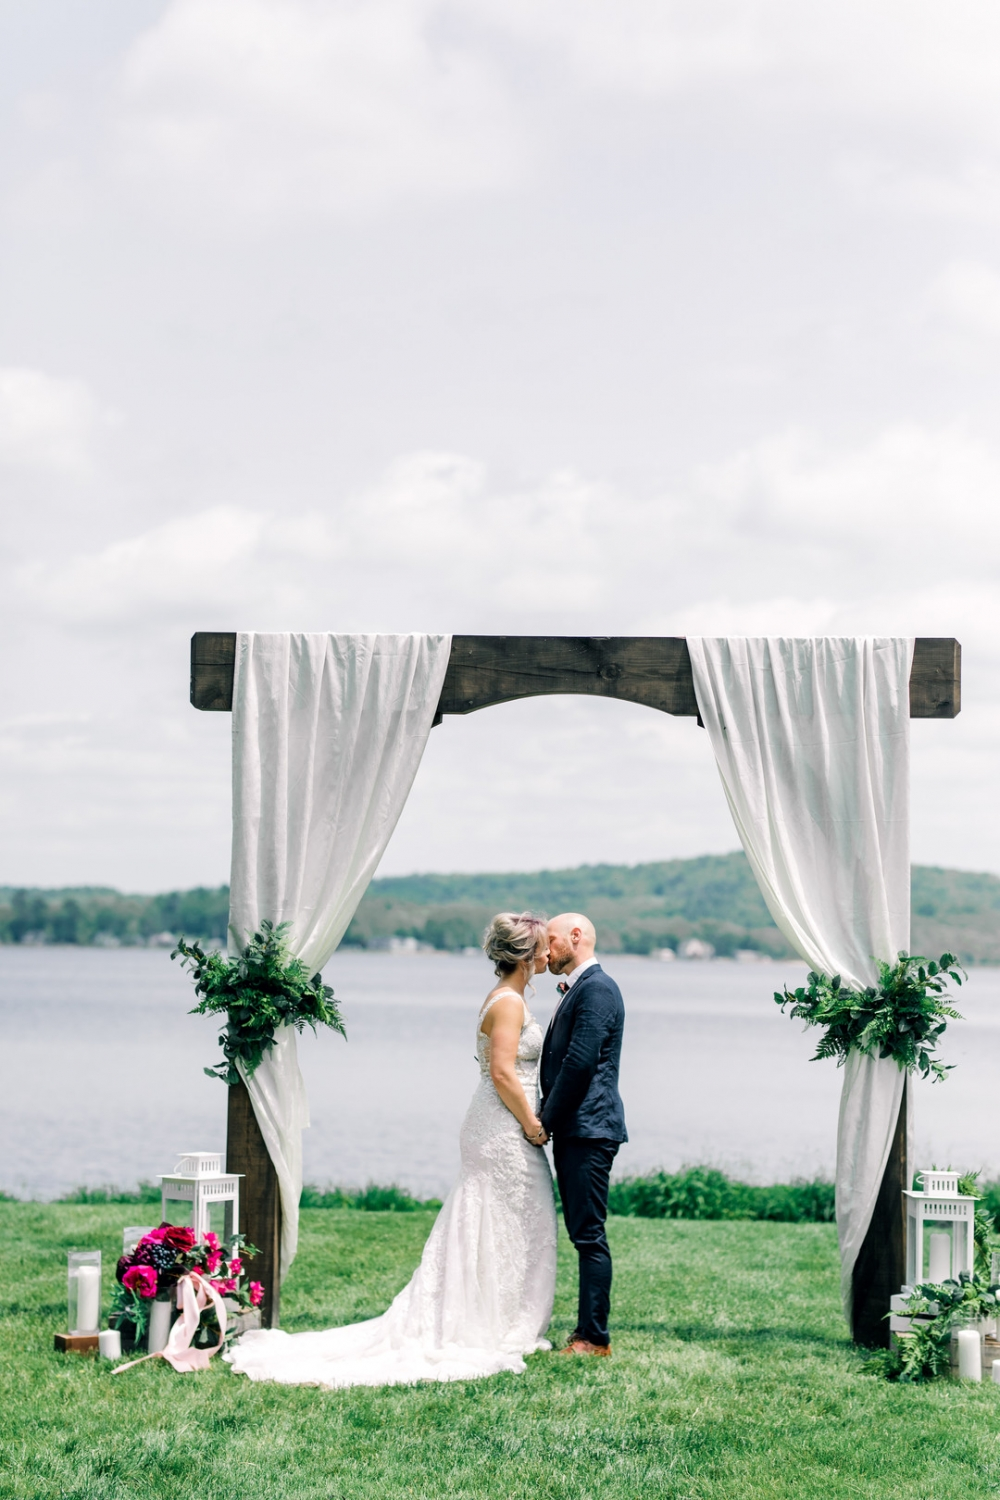 ceremony backdrop with white fabric and greenery